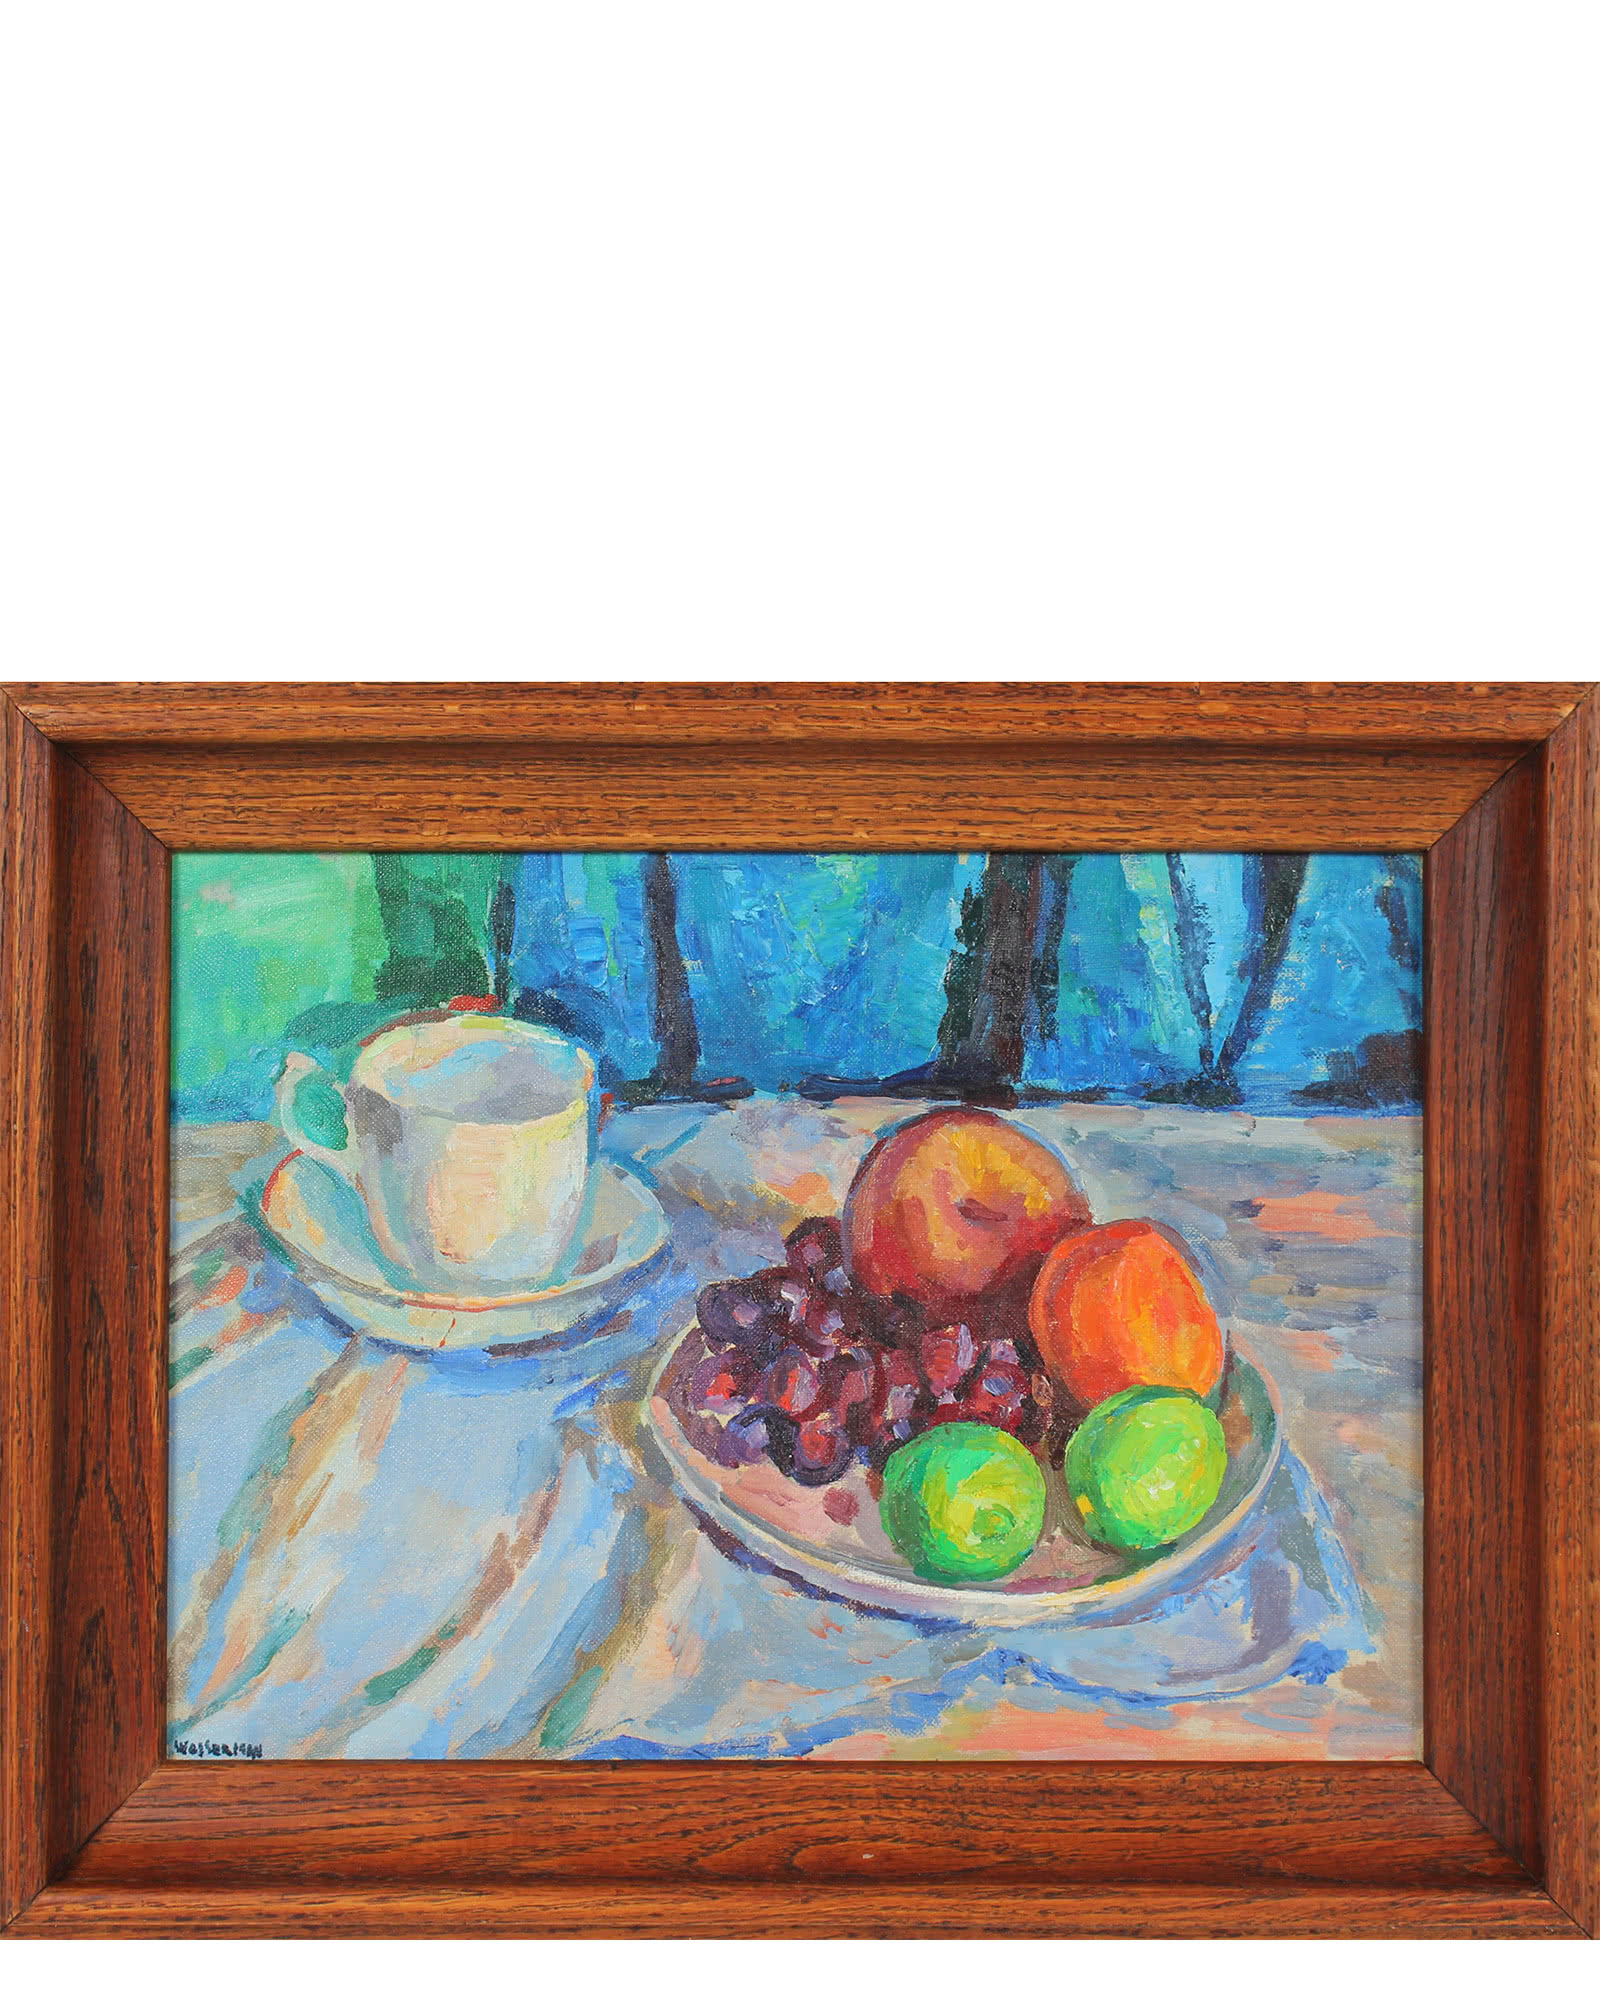 Study of Fruits by Gerald Wasserman